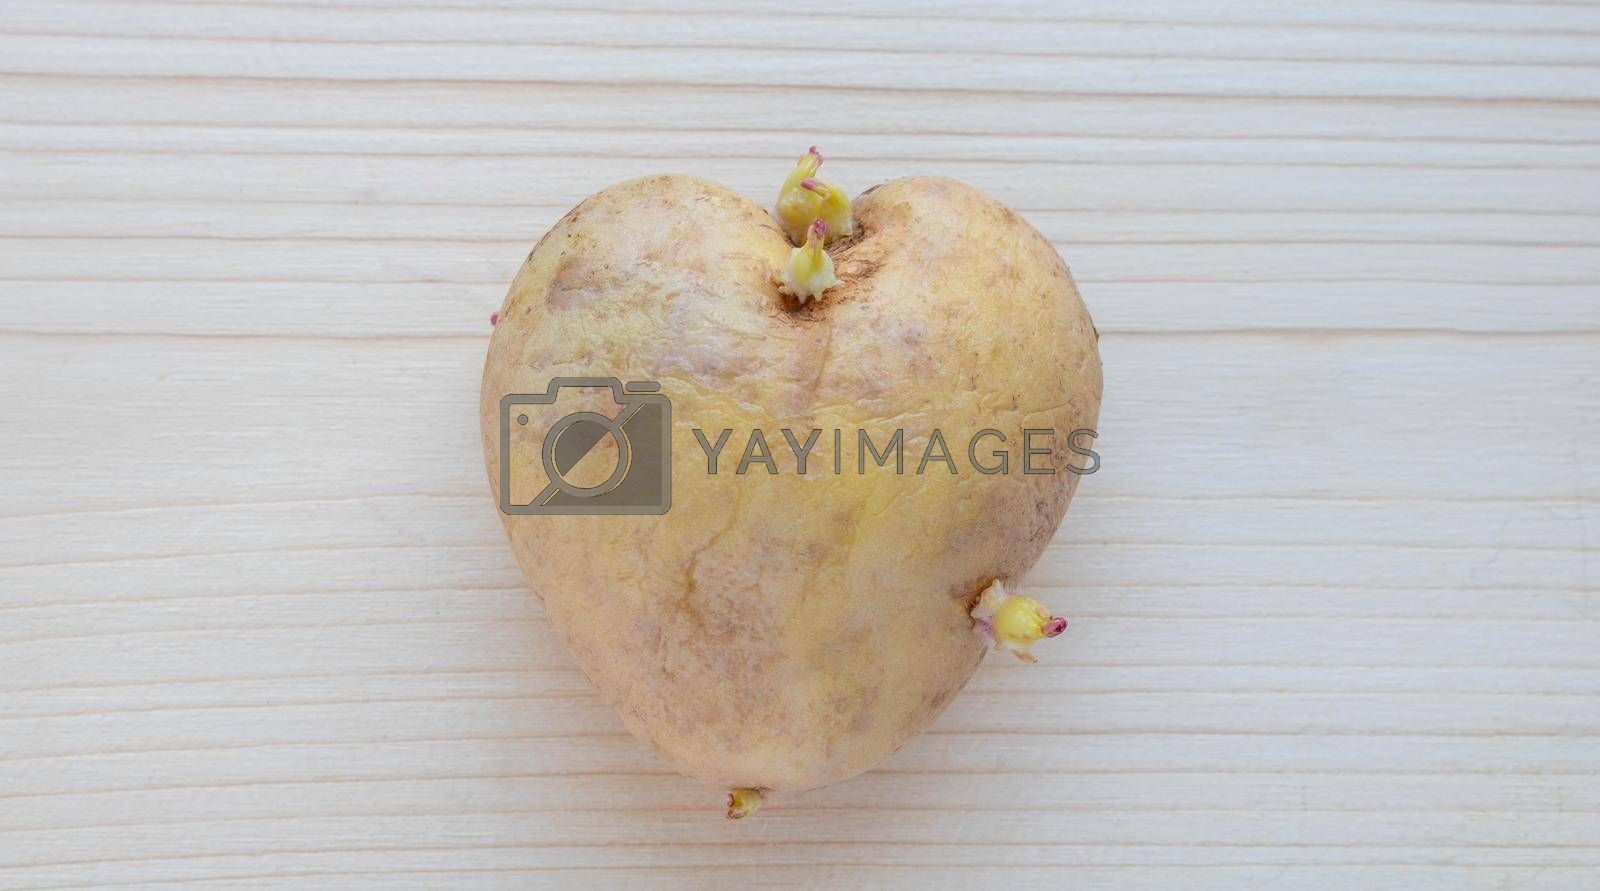 An unusual heart-shaped potato with sprouts lies on a wooden board on the table.